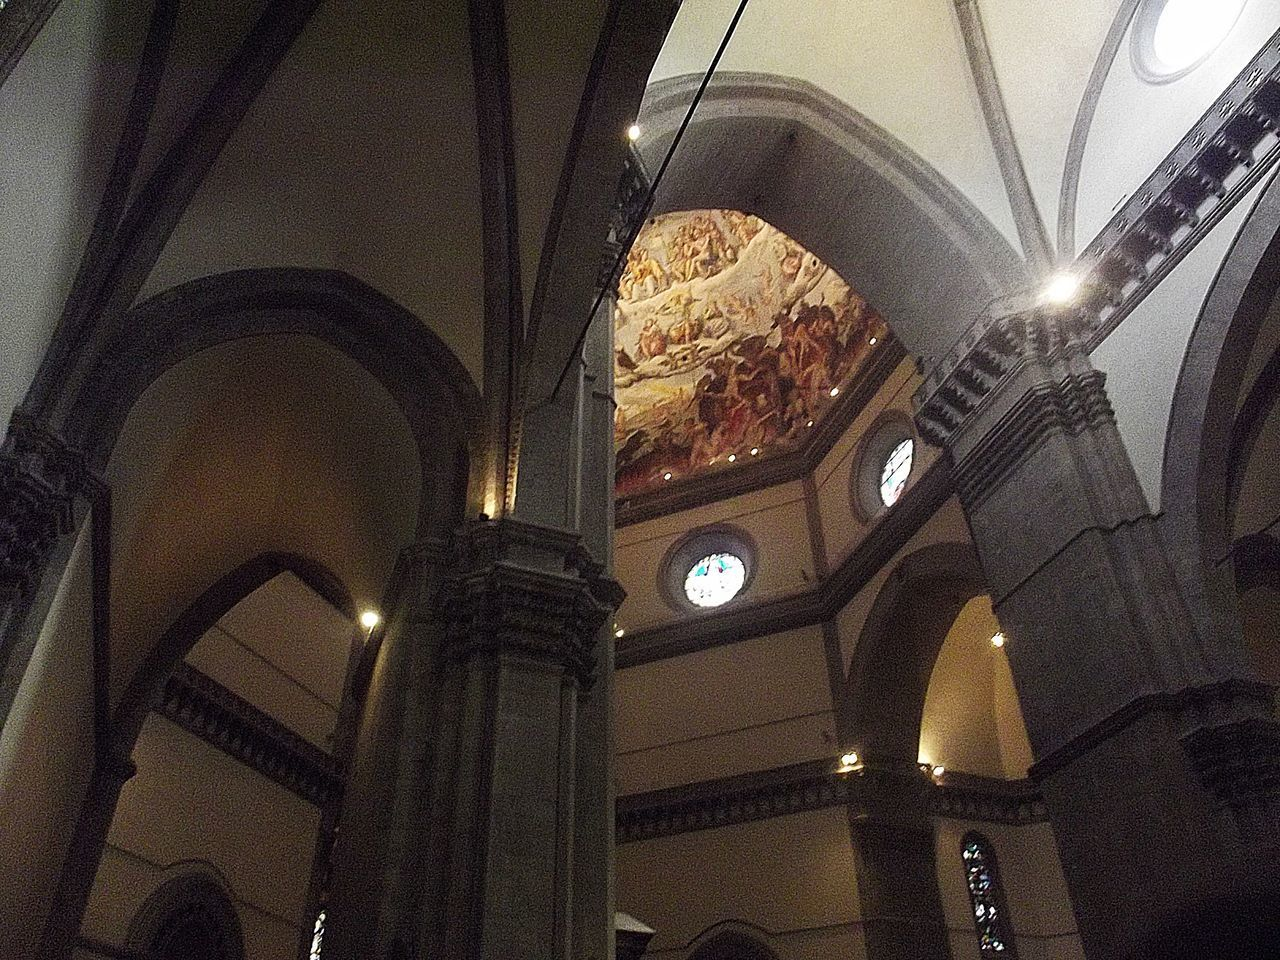 architecture, indoors, low angle view, illuminated, arch, ceiling, built structure, no people, place of worship, day